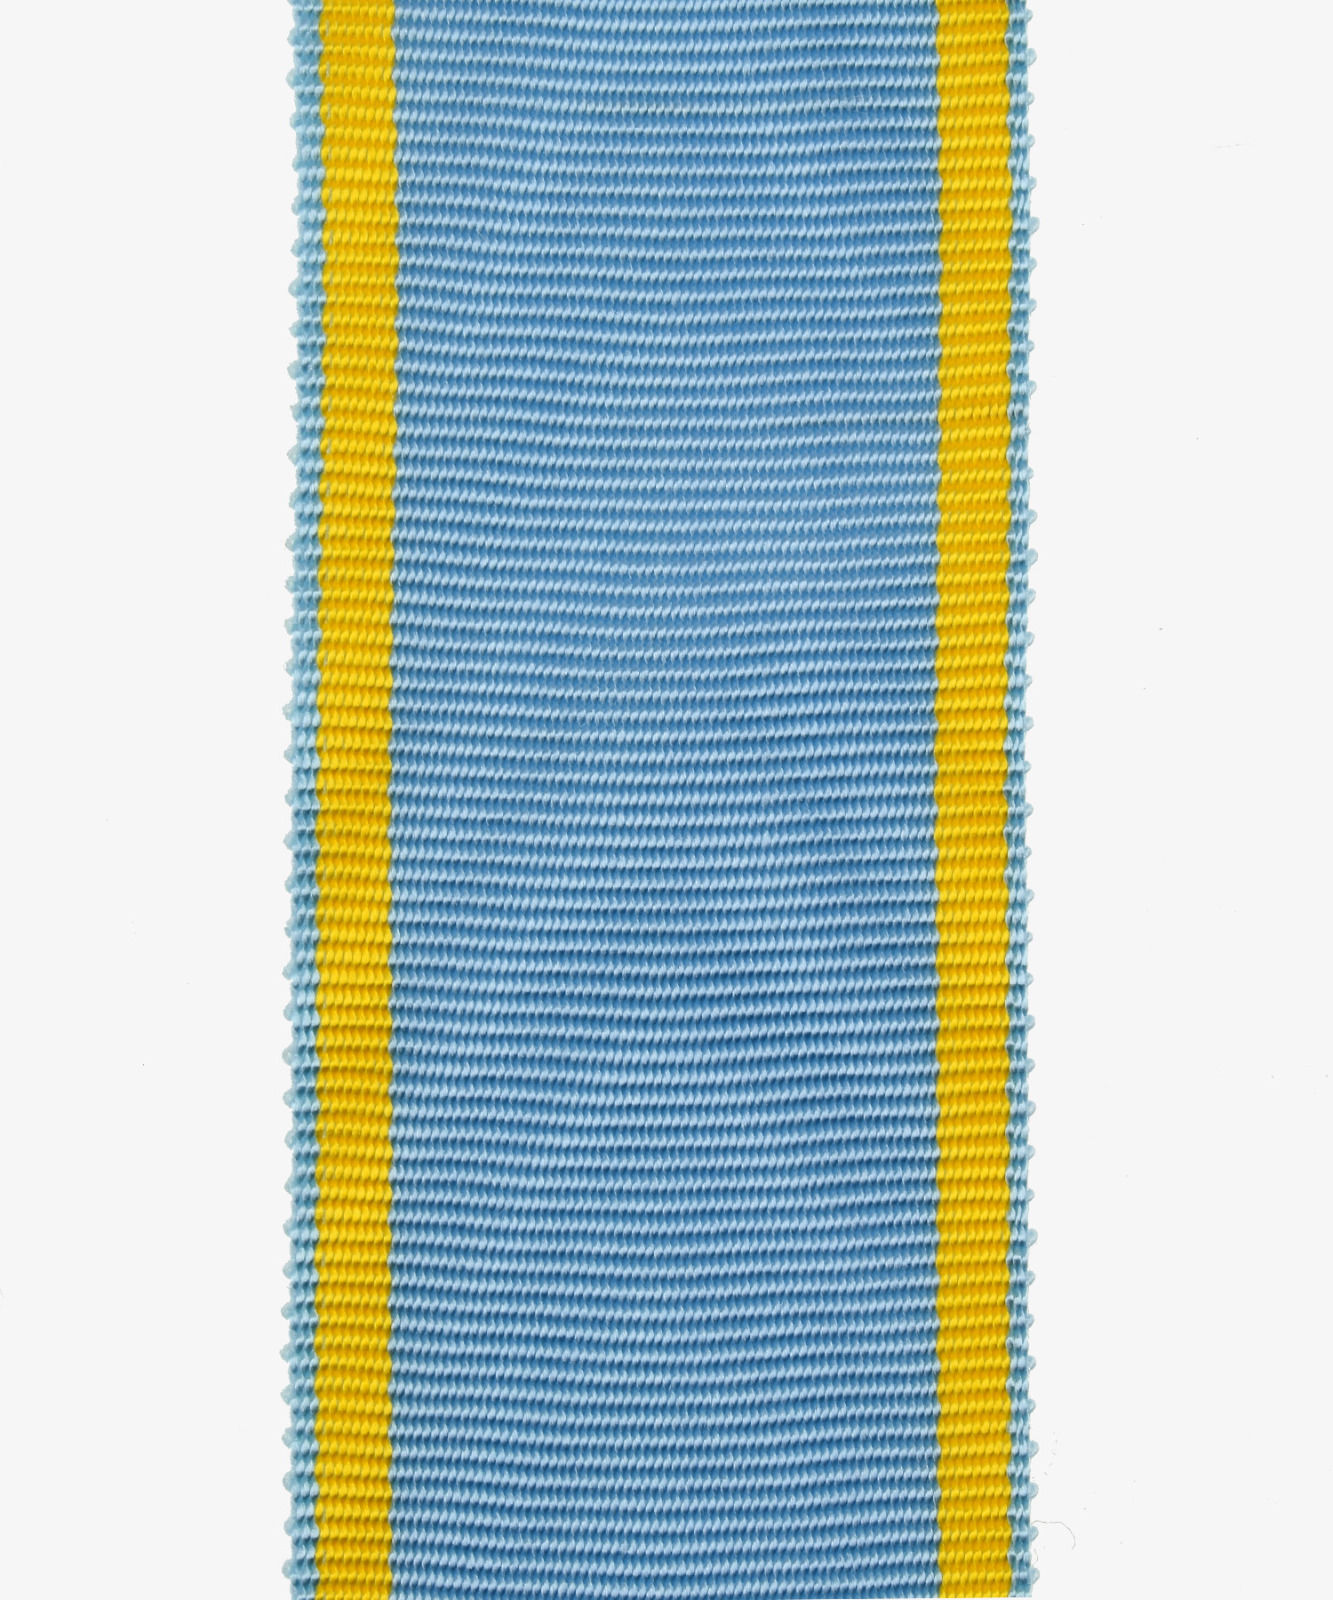 Germany, SAXONY, Kingdom. Ribbon for the Silver Medal of the Military Order of St. Henry